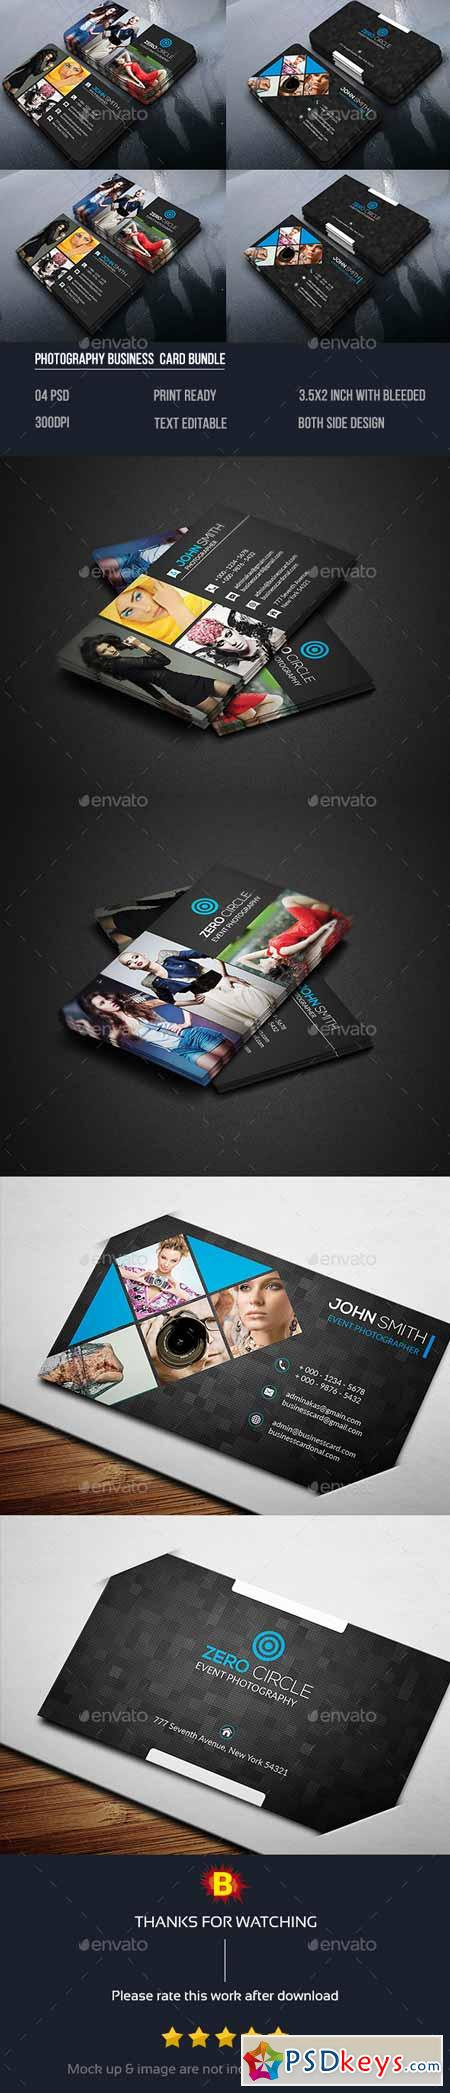 Photography Business Card Bundle 14493705 » Free Download ...